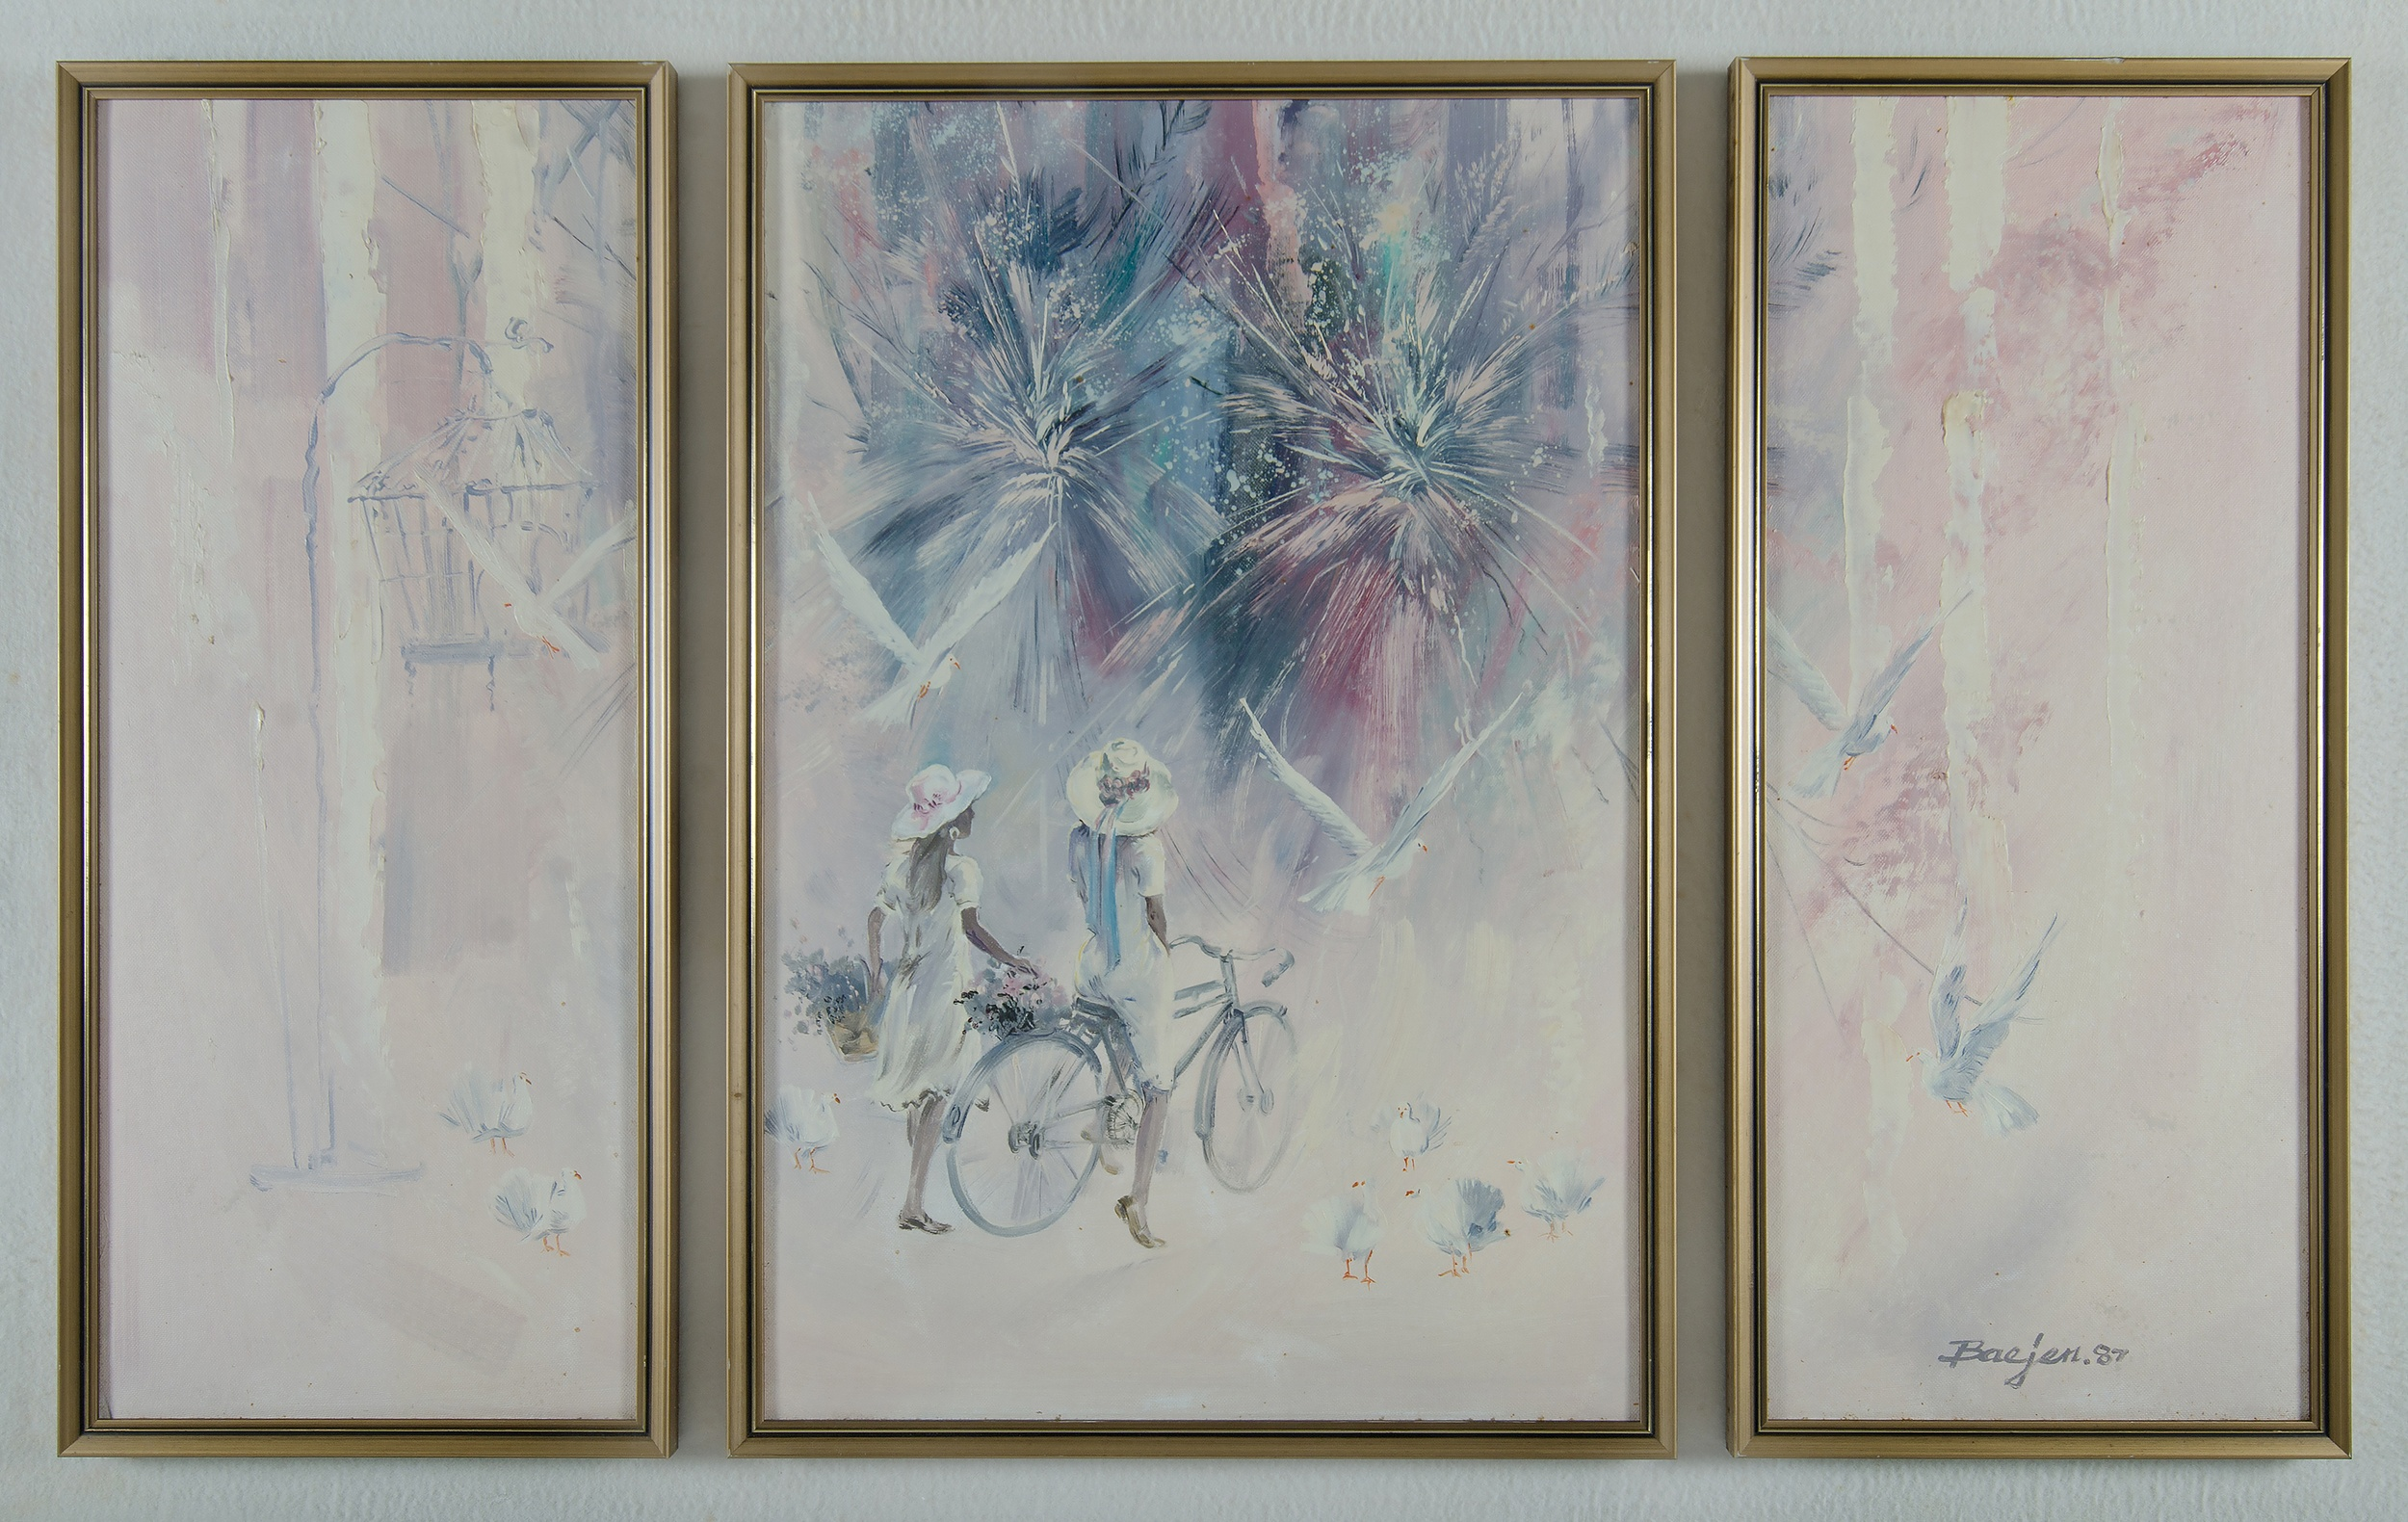 'BAEJEN: Fantasy in the Park, 1987 Oil on Canvas Board Triptych'